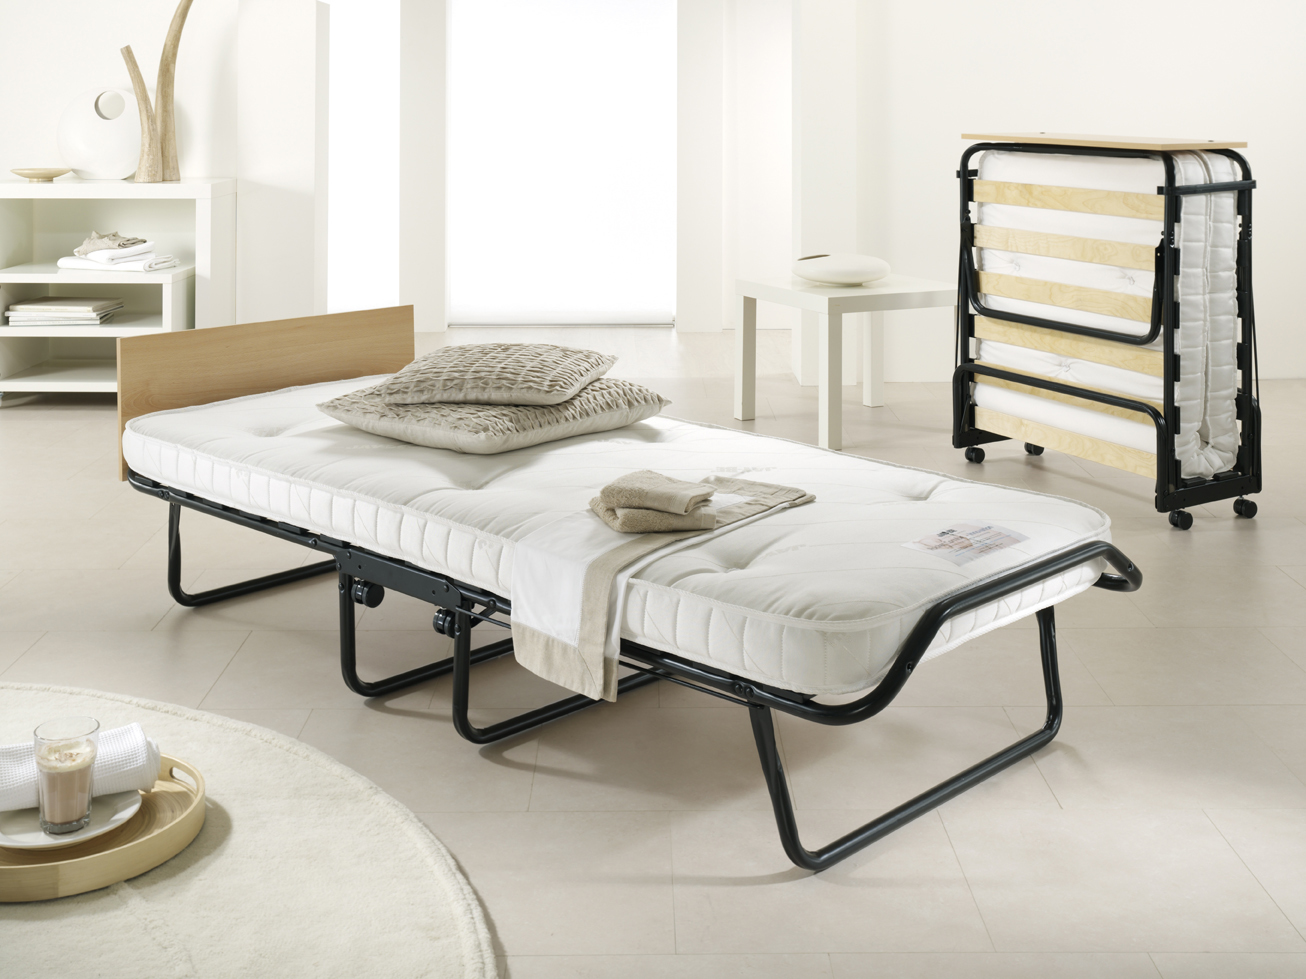 Jay-Be Royal Pocket Sprung Folding Bed single